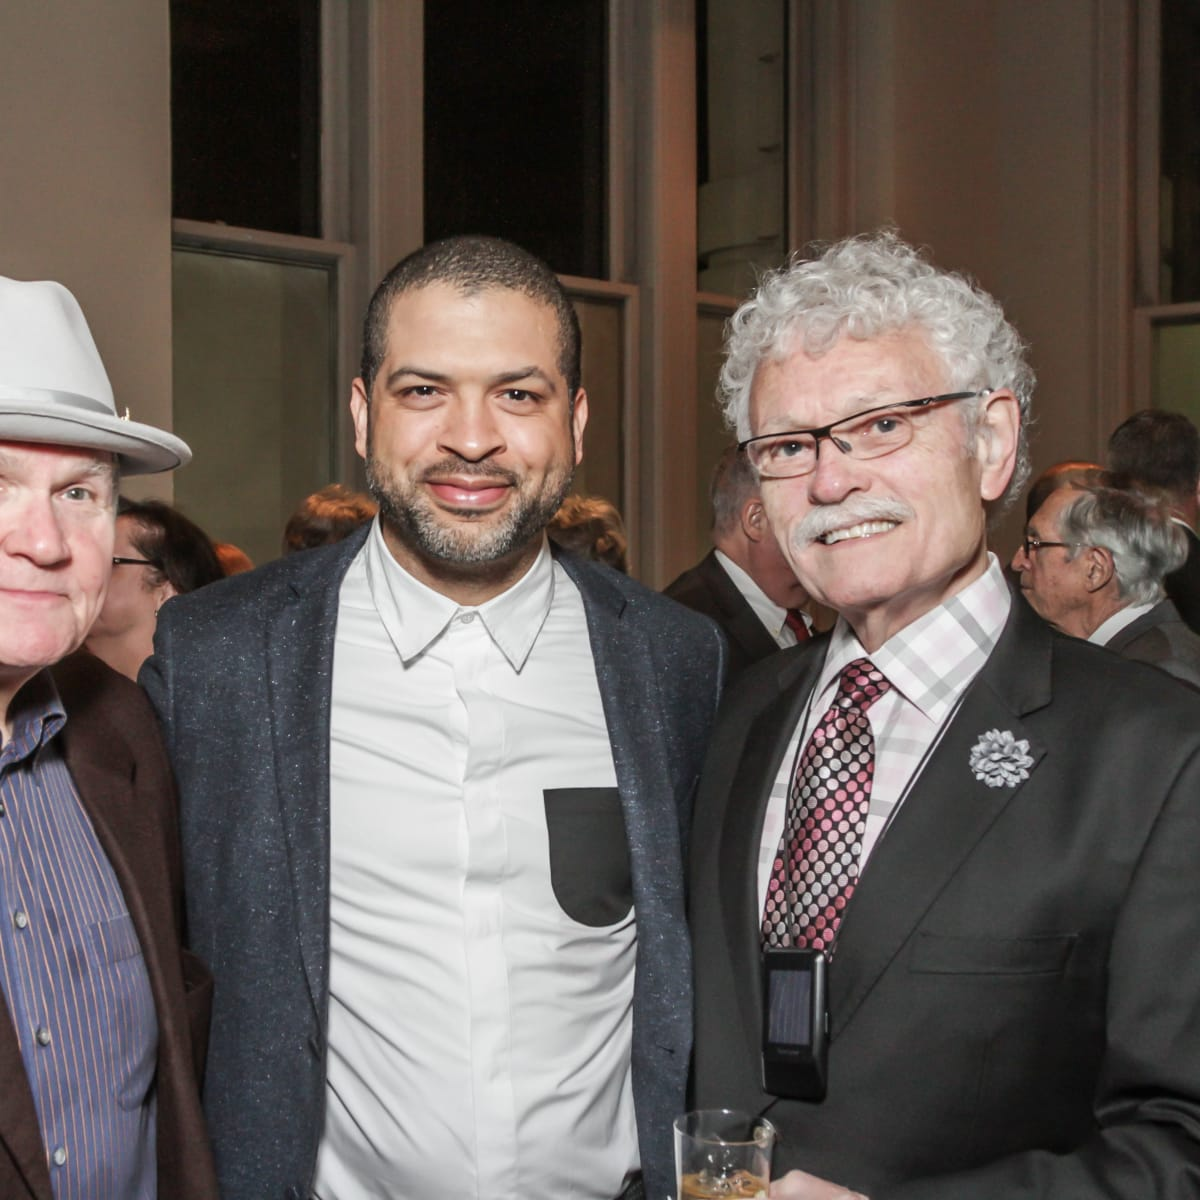 Bruce Stram, Jason Moran, Bob Morgan at Club da Camera